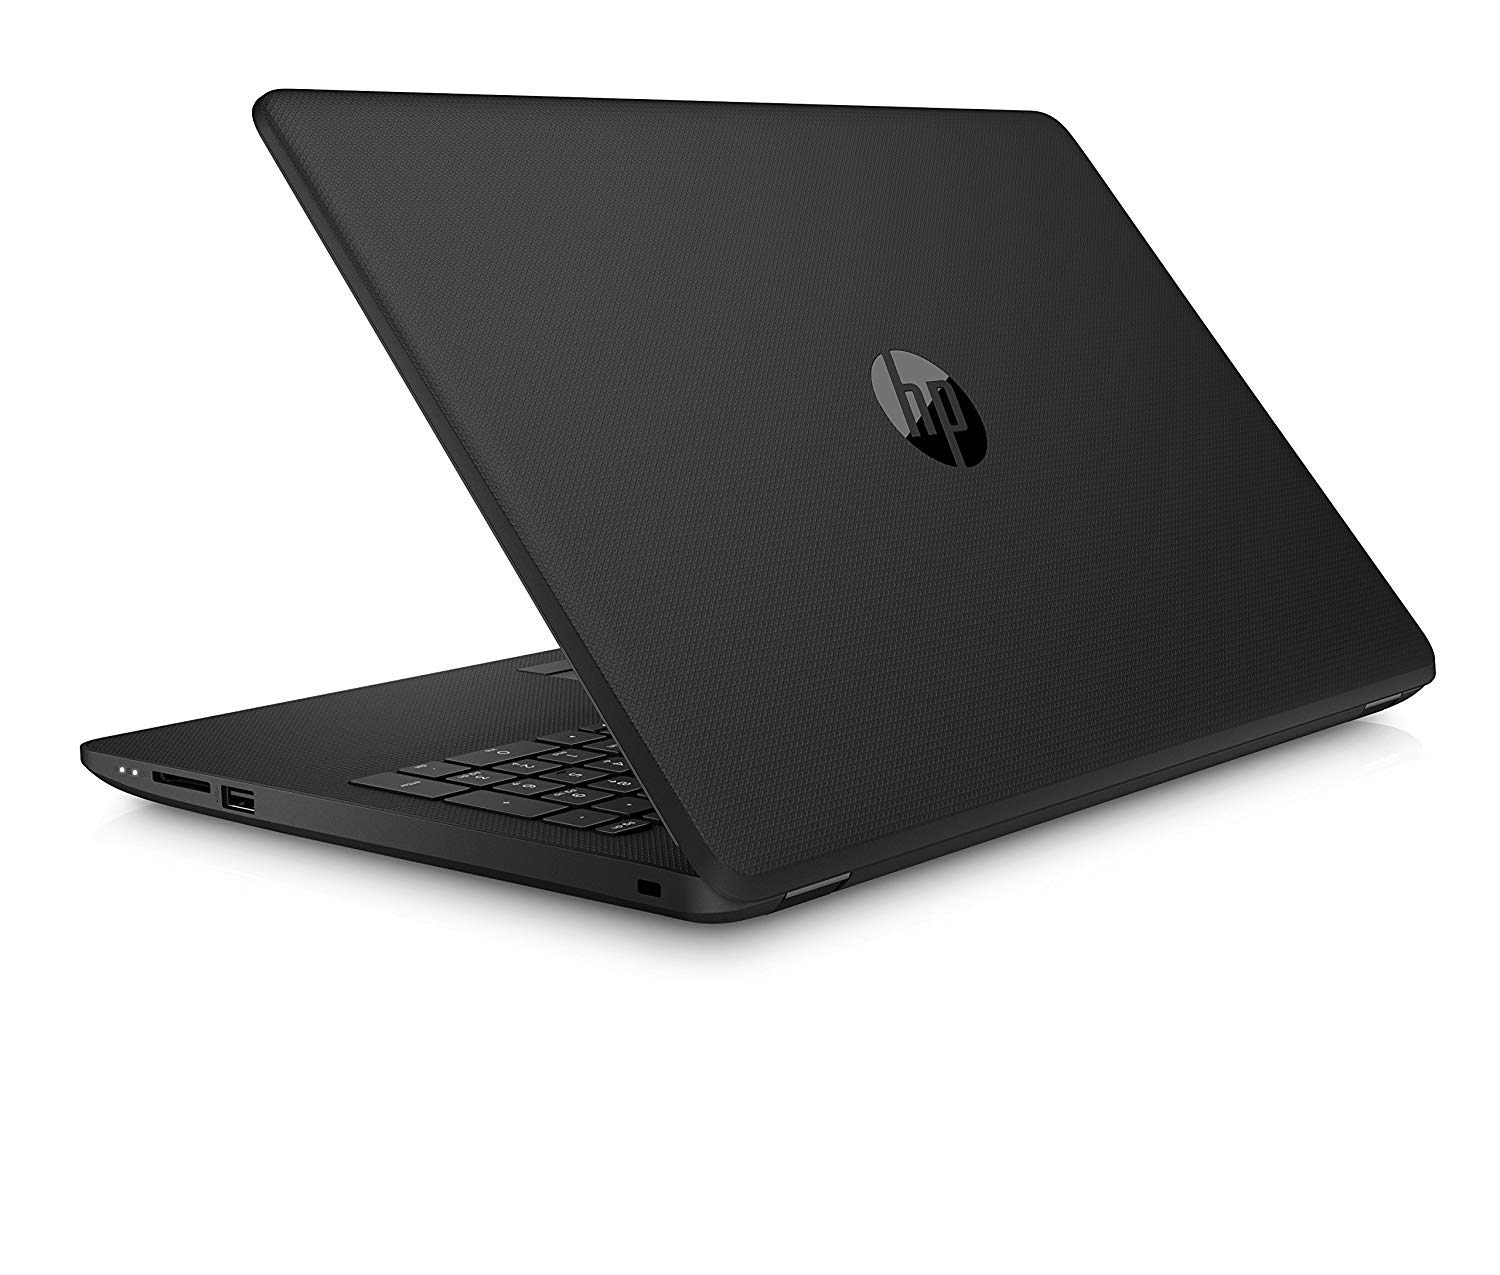 Amazon.com: 2019 HP 15 Laptop 15.6